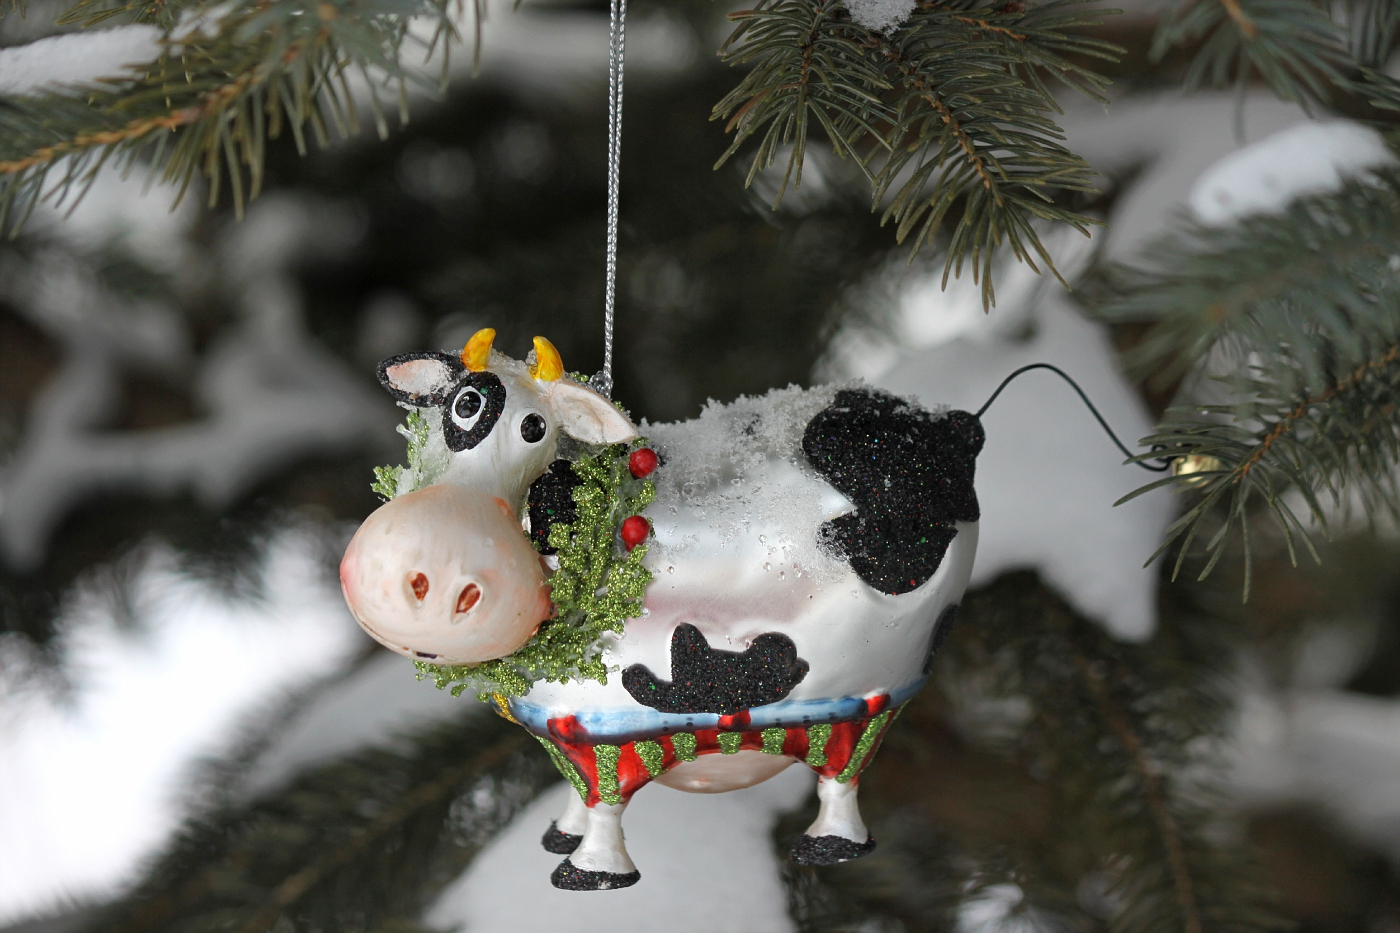 Cow Ornament #3